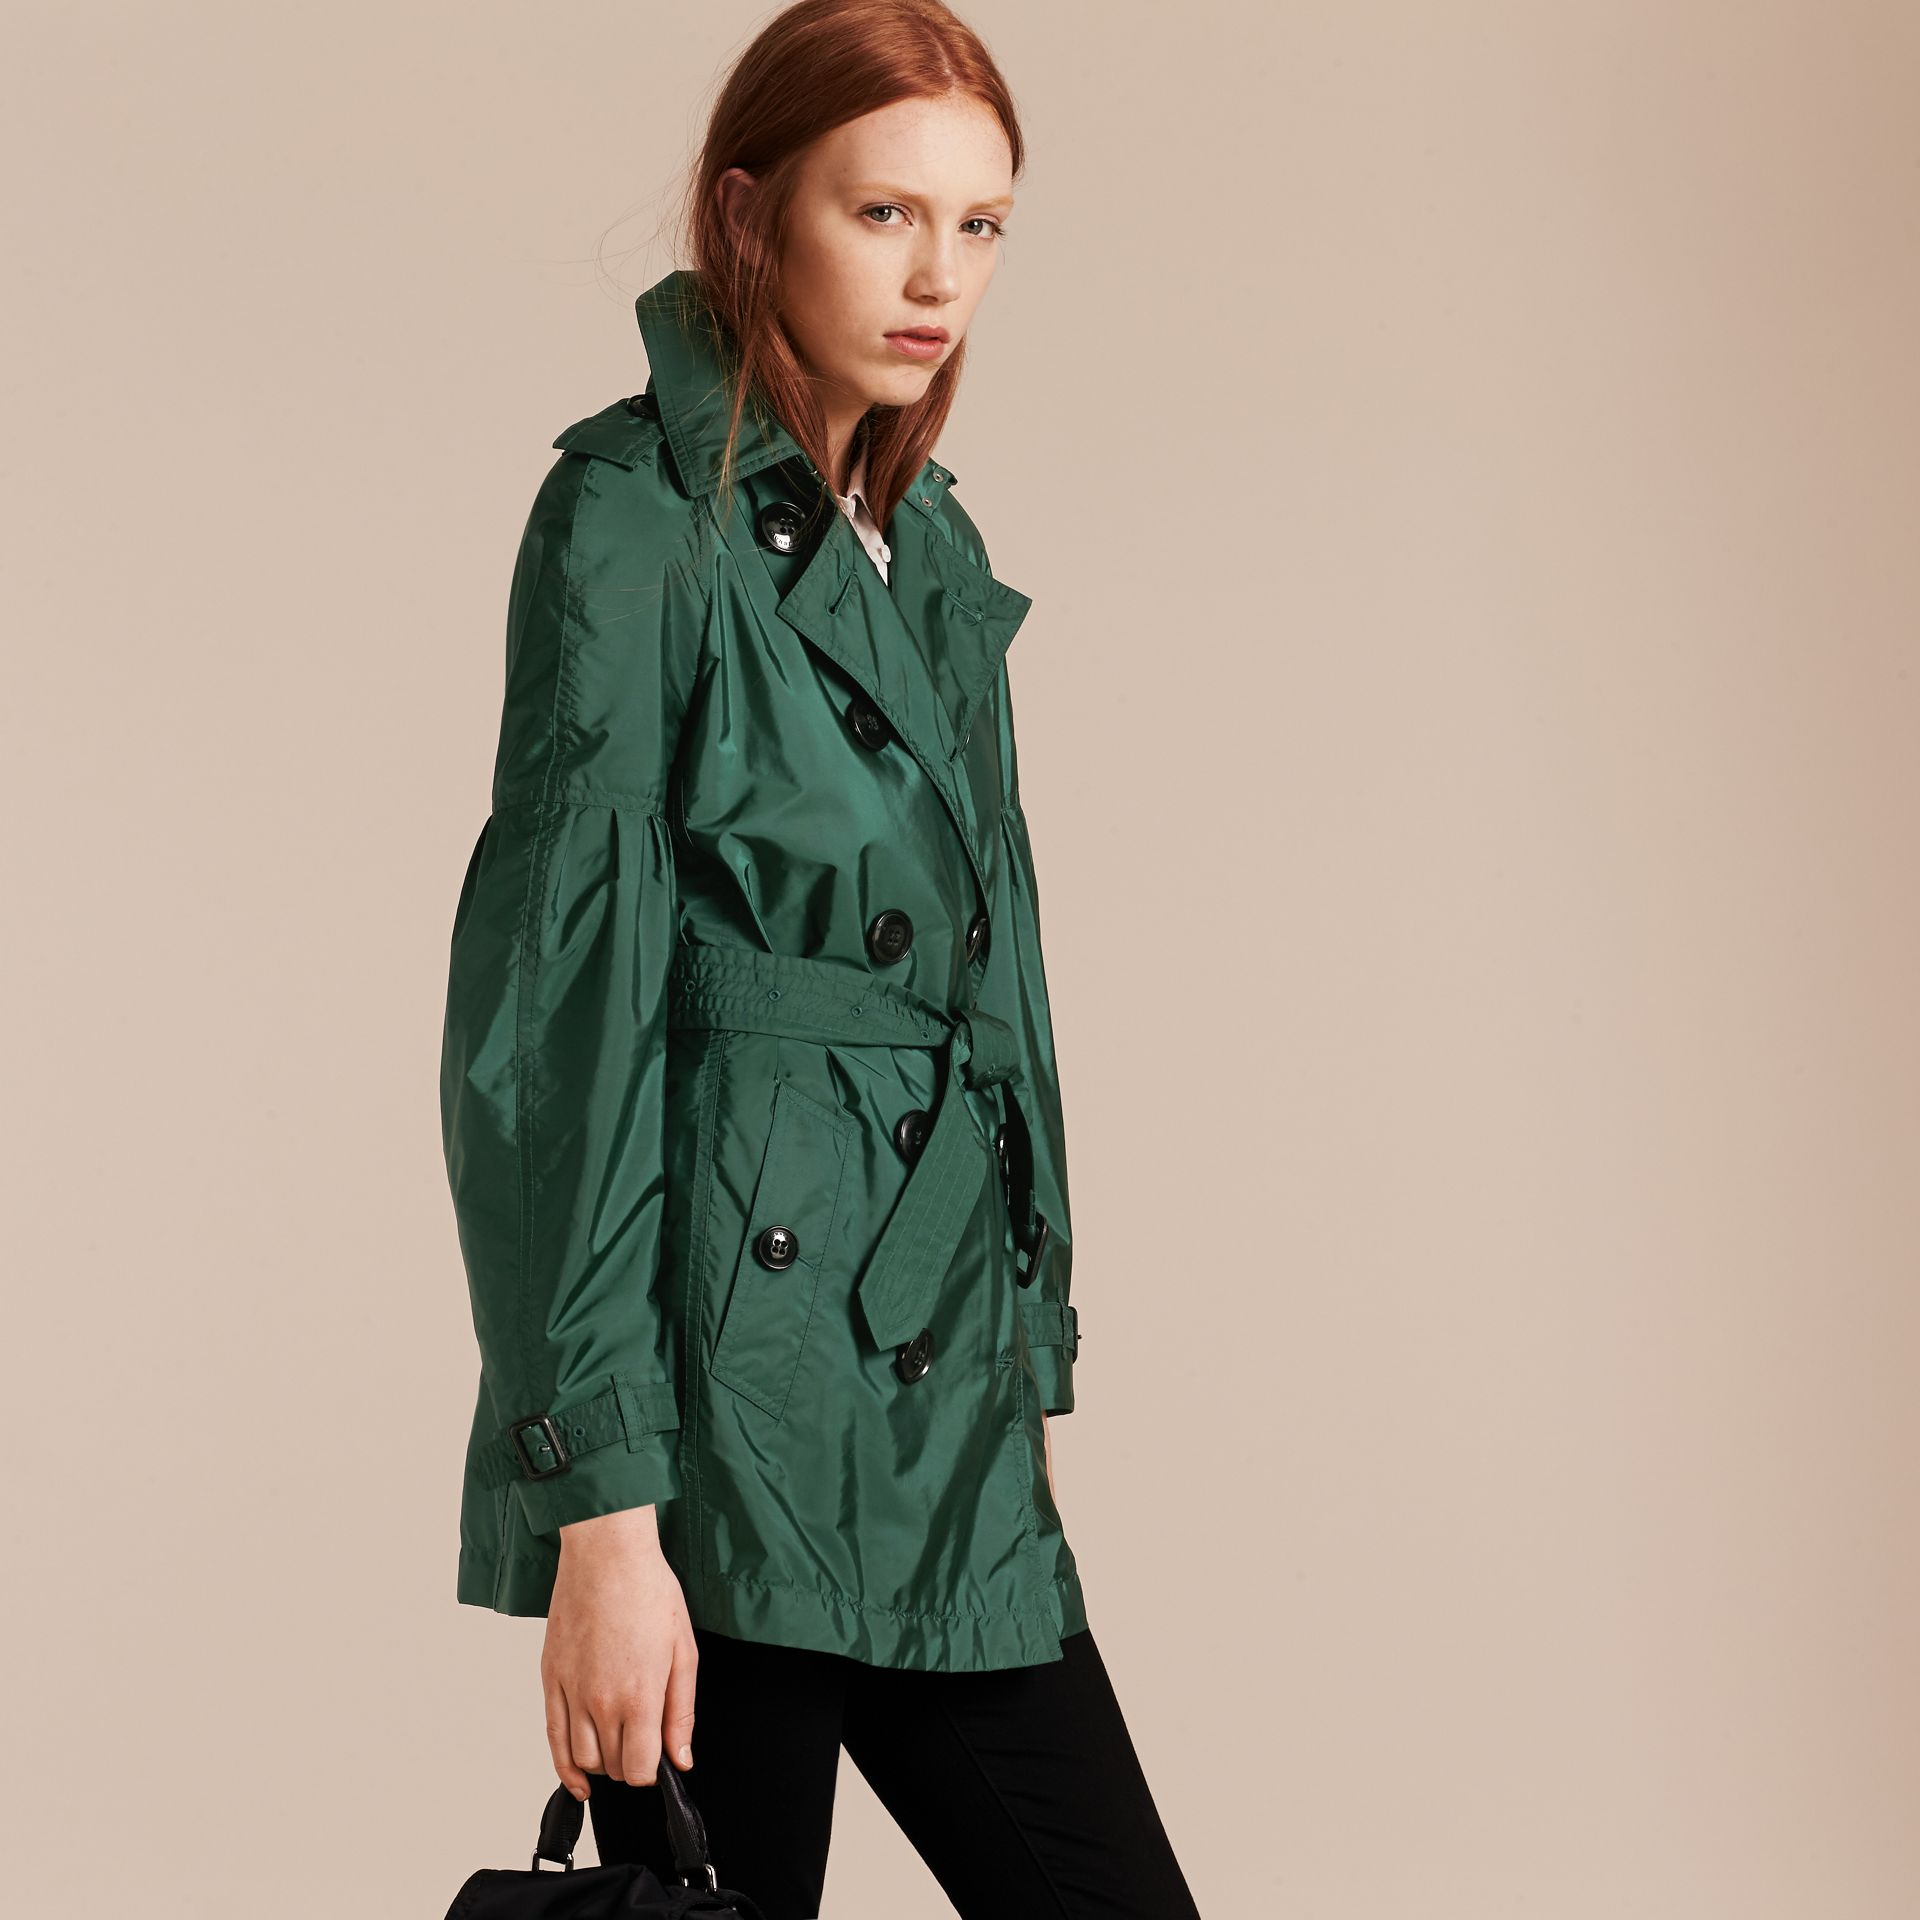 Vert bouteille intense Trench-coat repliable avec manches cloches Vert Bouteille Intense - photo de la galerie 7